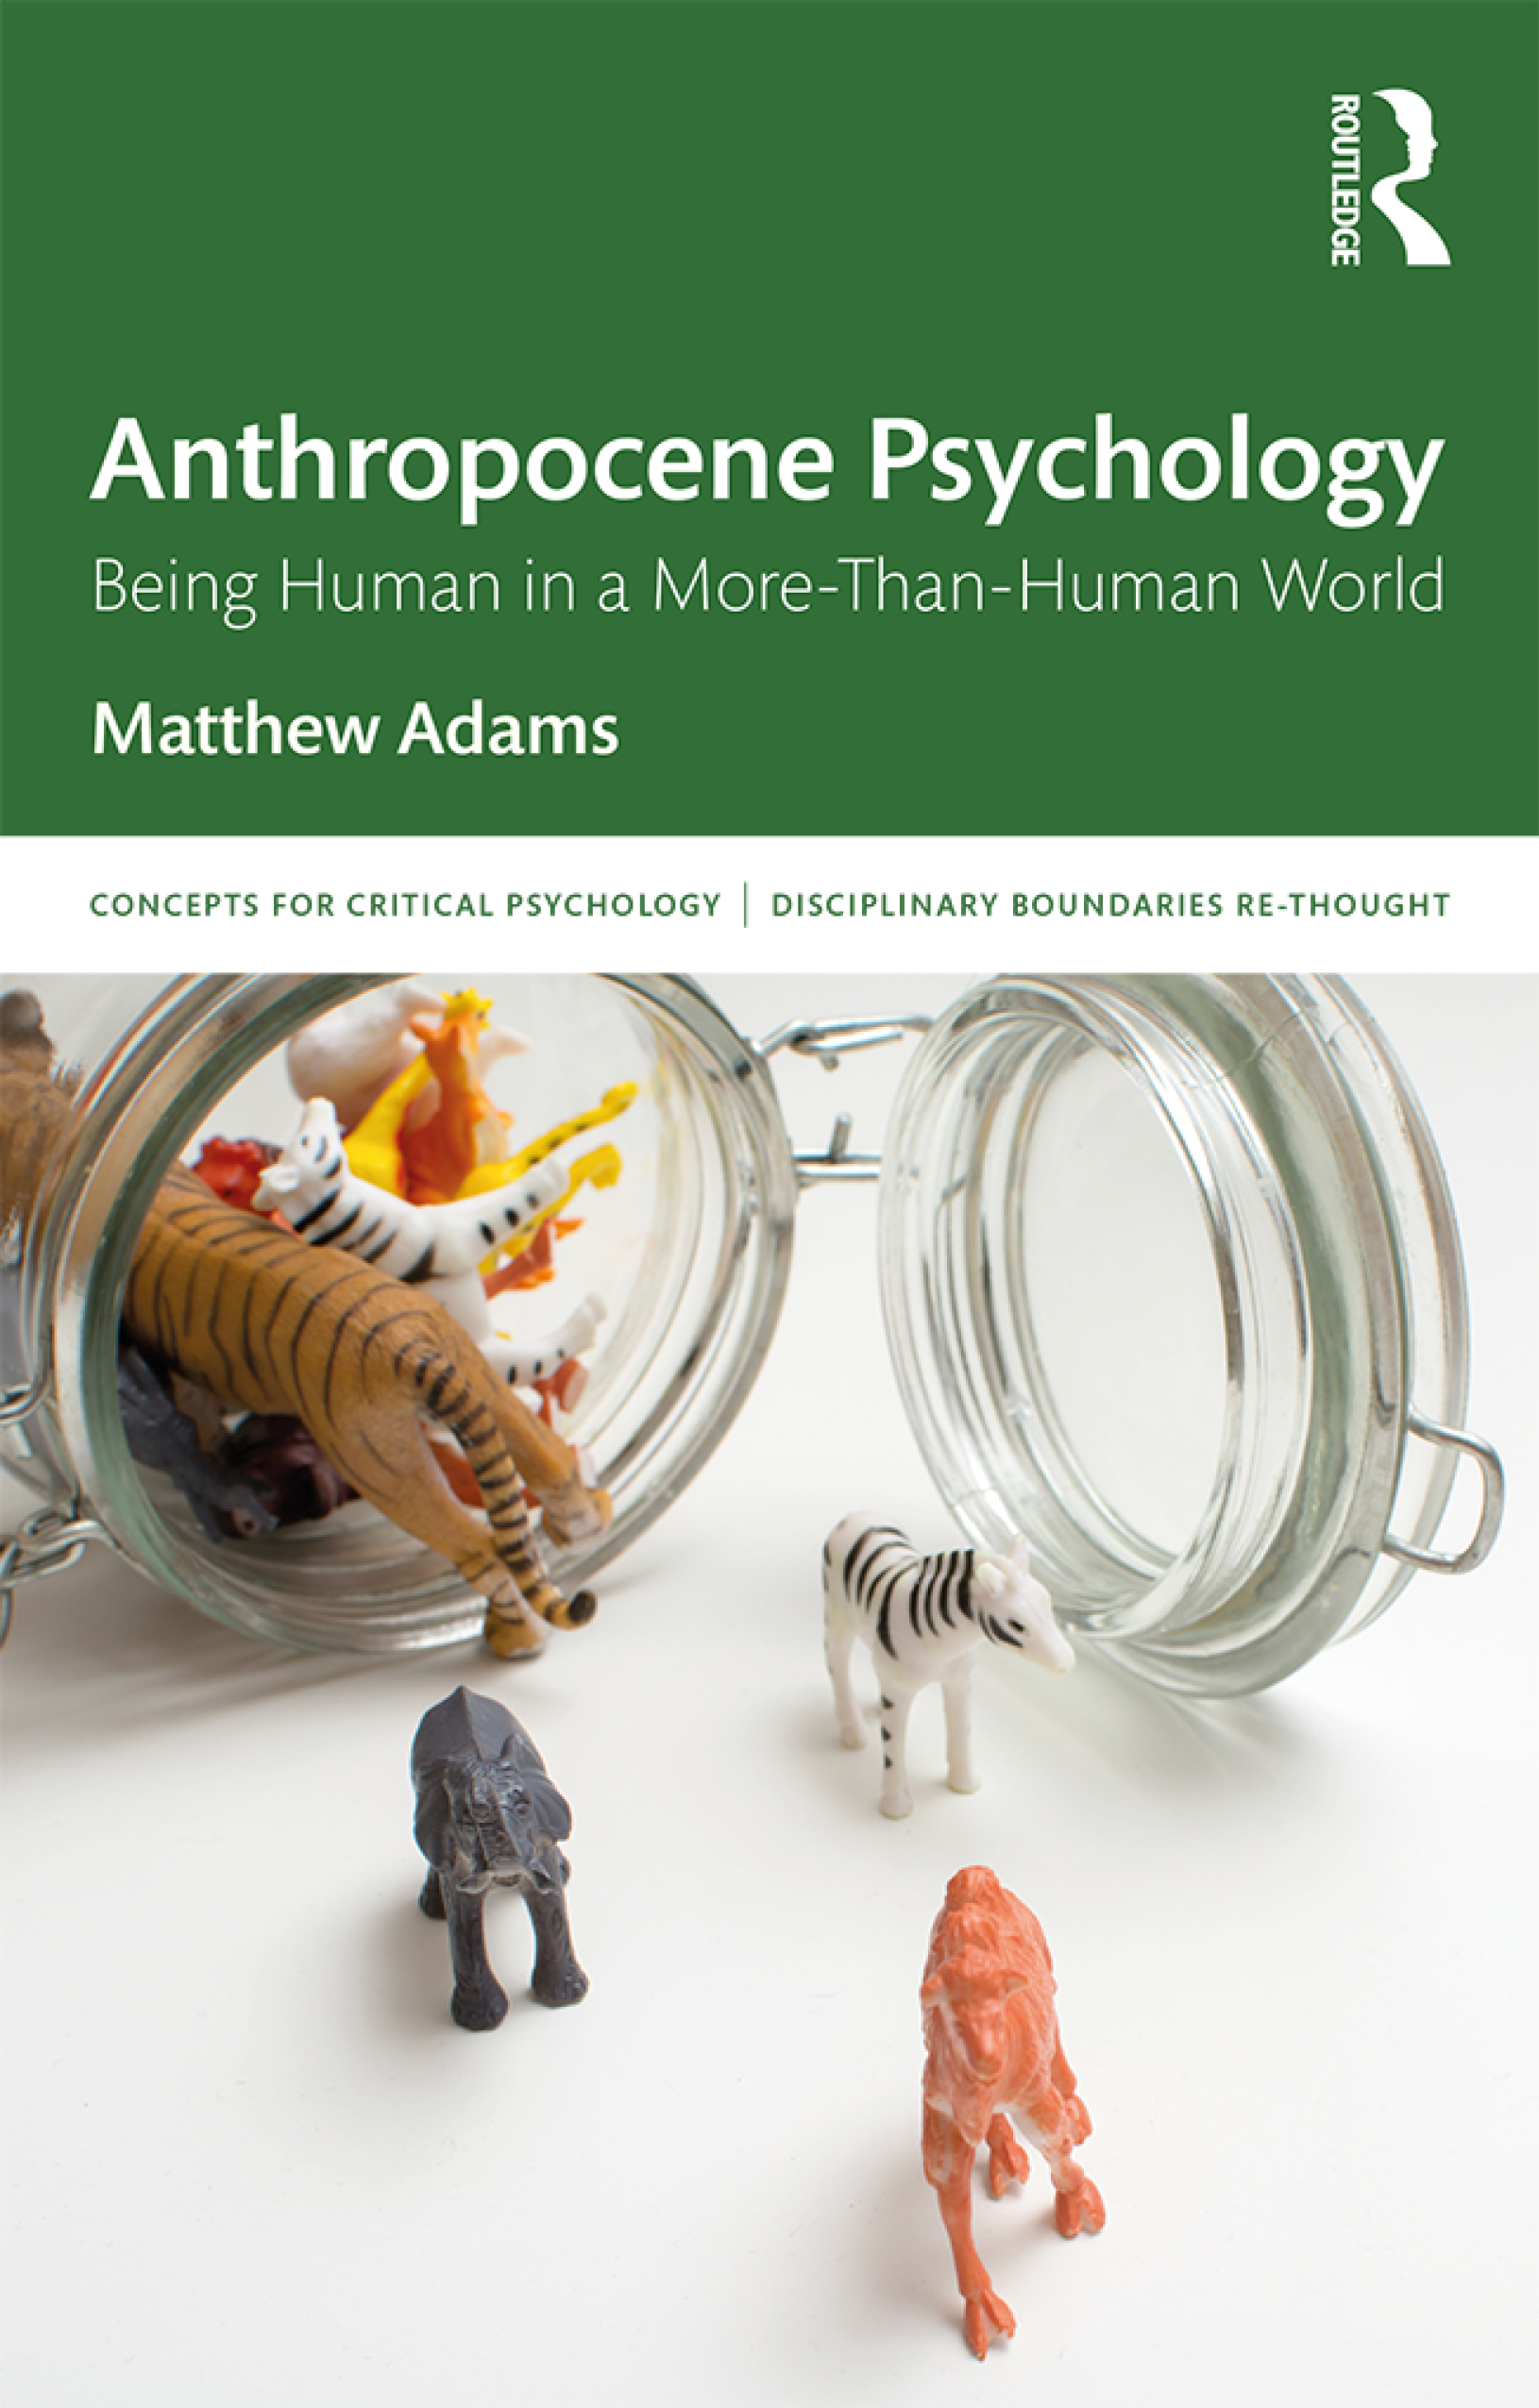 Anthropocene Psychology: Being Human in a More-than-Human World book cover